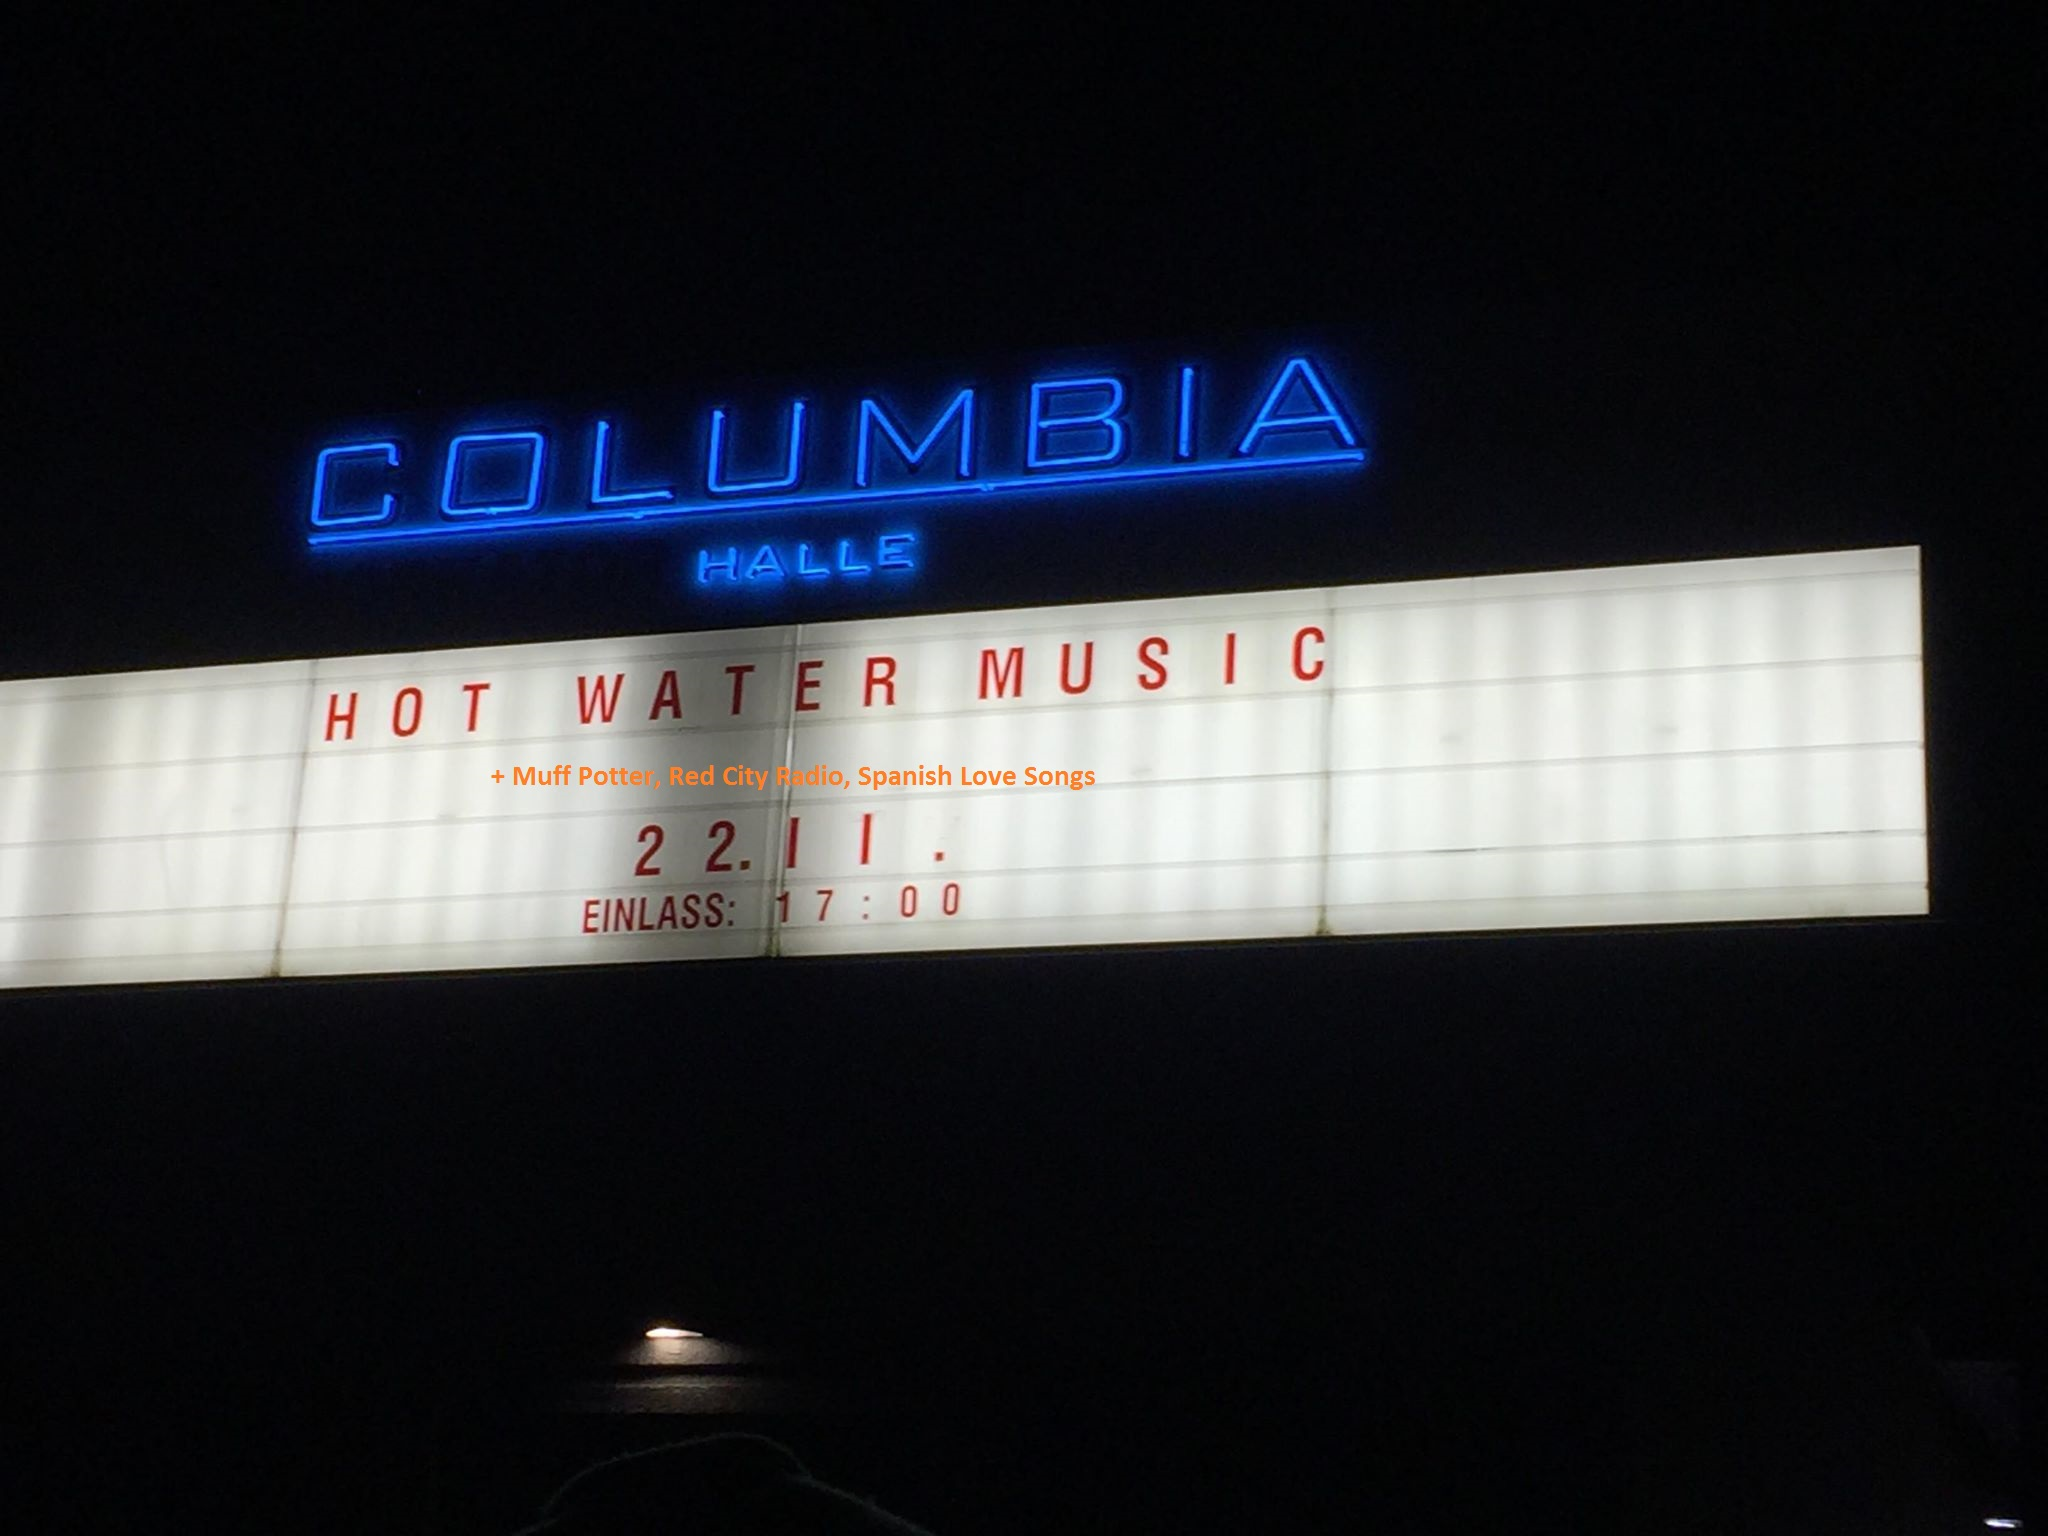 CONCERT REVIEW: HOT WATER, MUFF POTTER, RED CITY RADIO, SPANISH LOVE SONGS @ COLUMBIA HALLE BERLIN